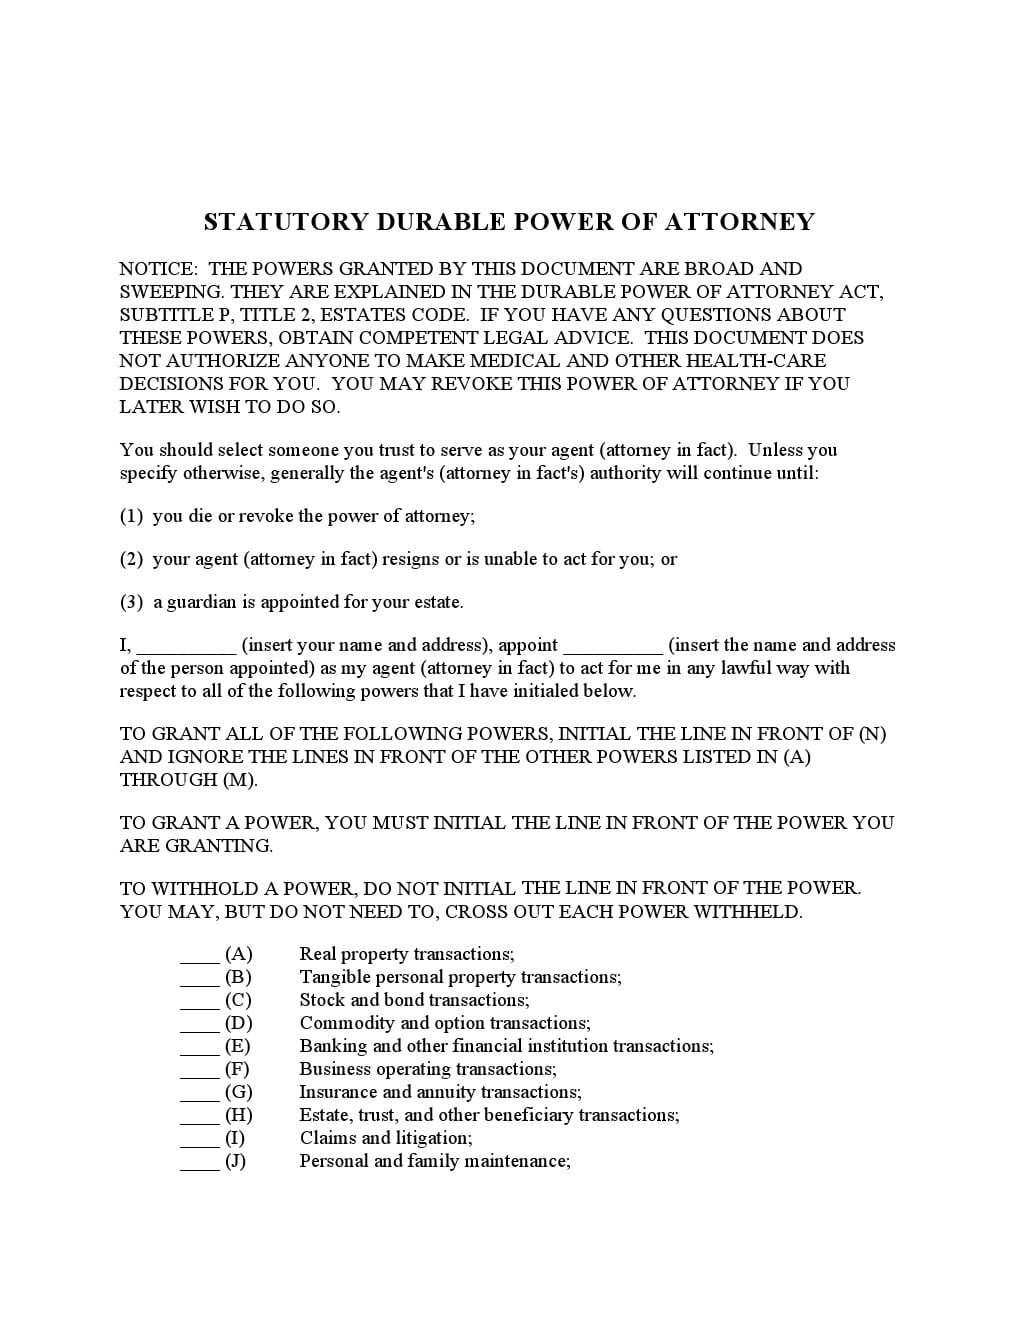 Free Texas Power of Attorney Forms | Adobe PDF | Word